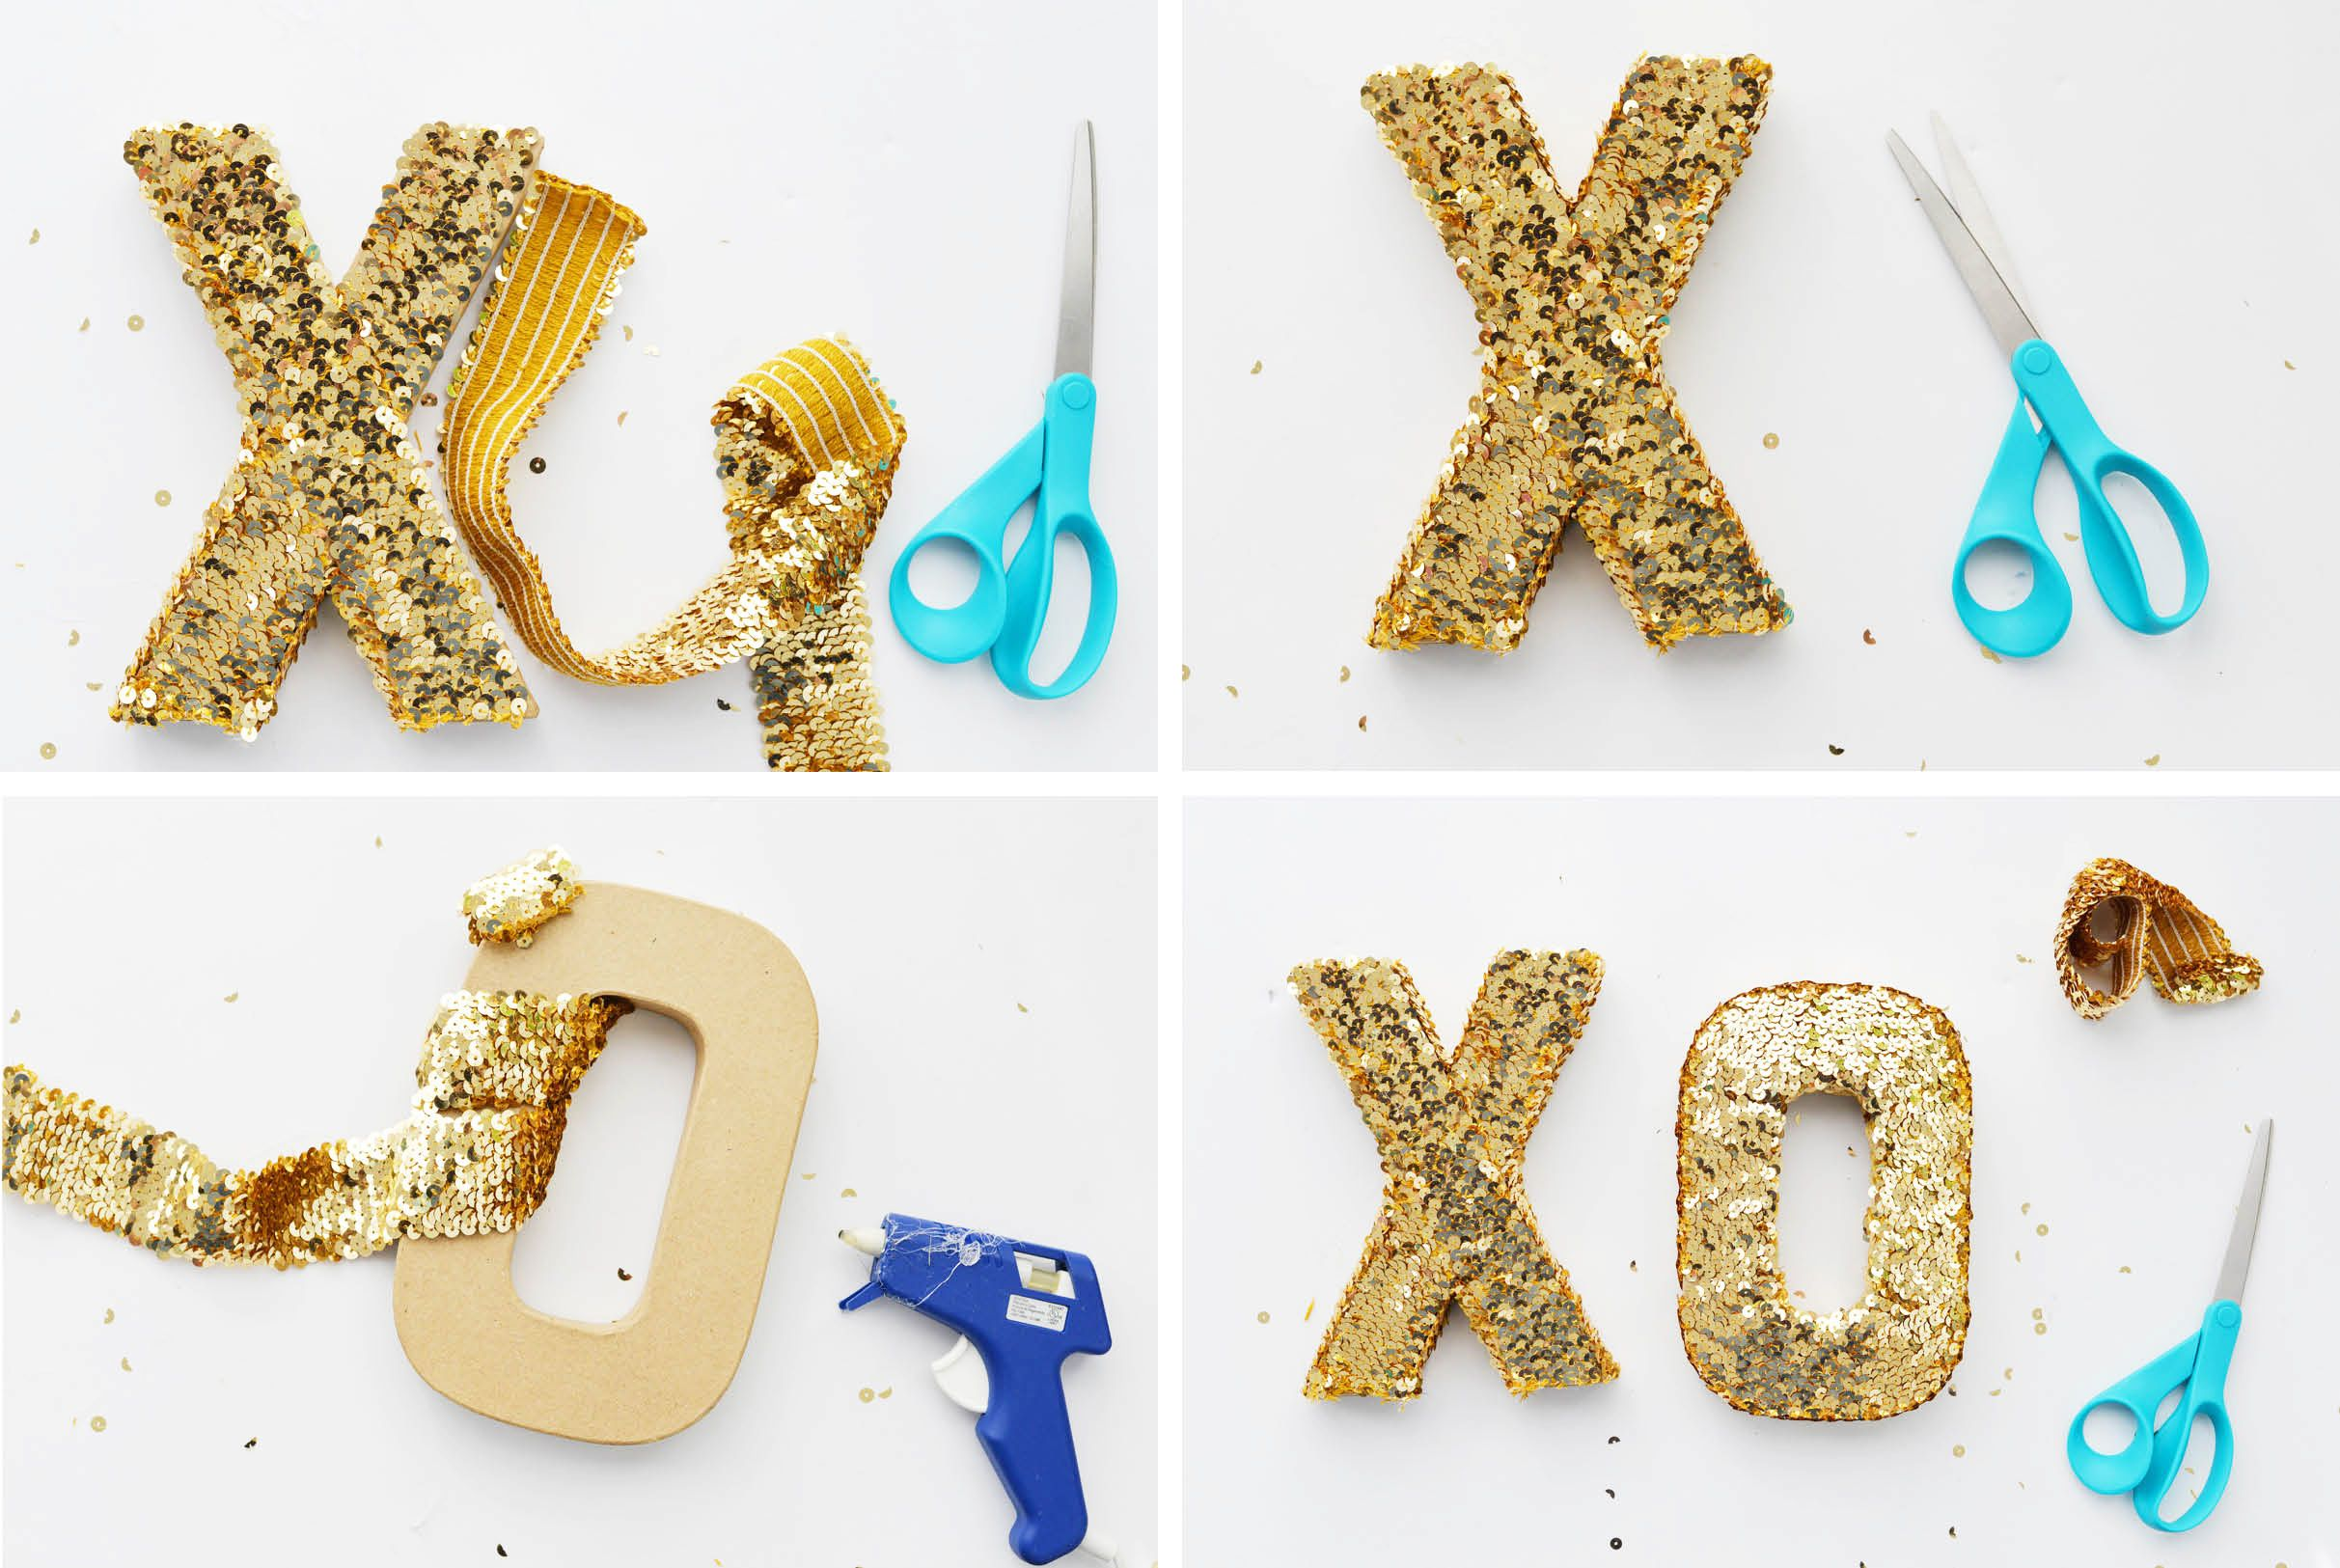 DIY Sequin XOXO Letters Instructions Part 2